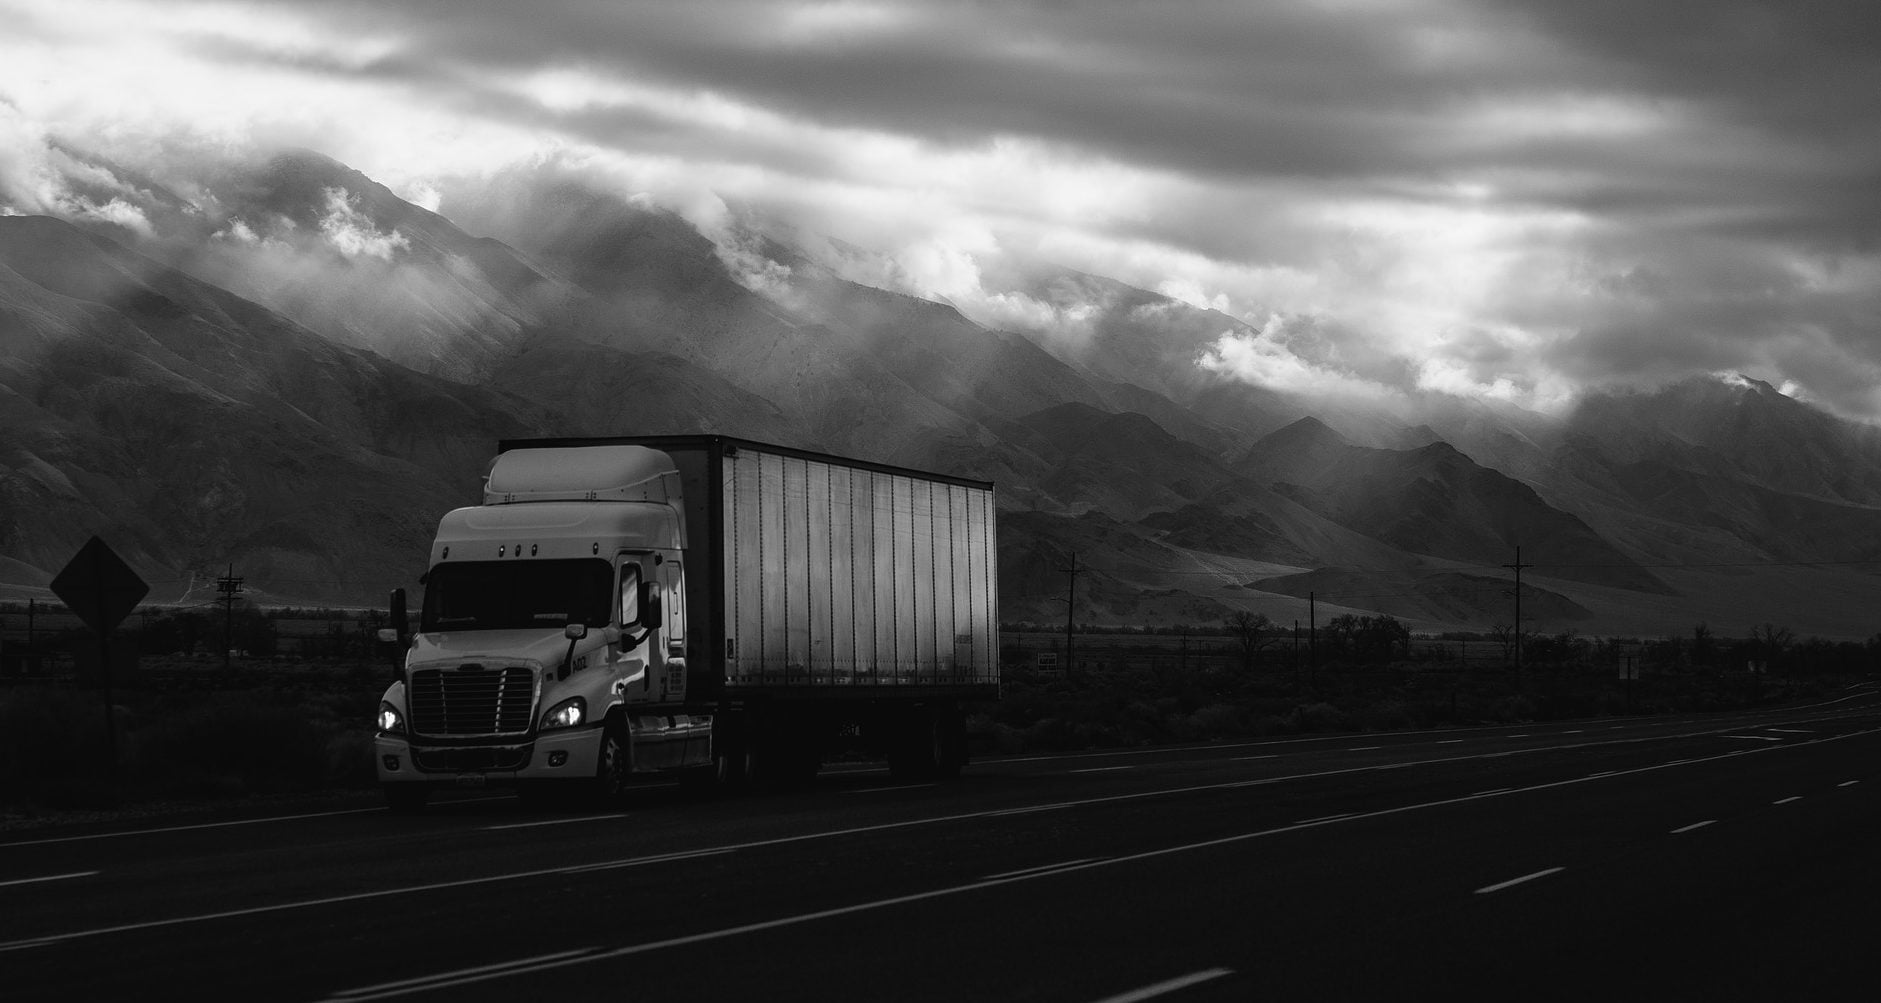 transport truck driving in black and white cost of claim